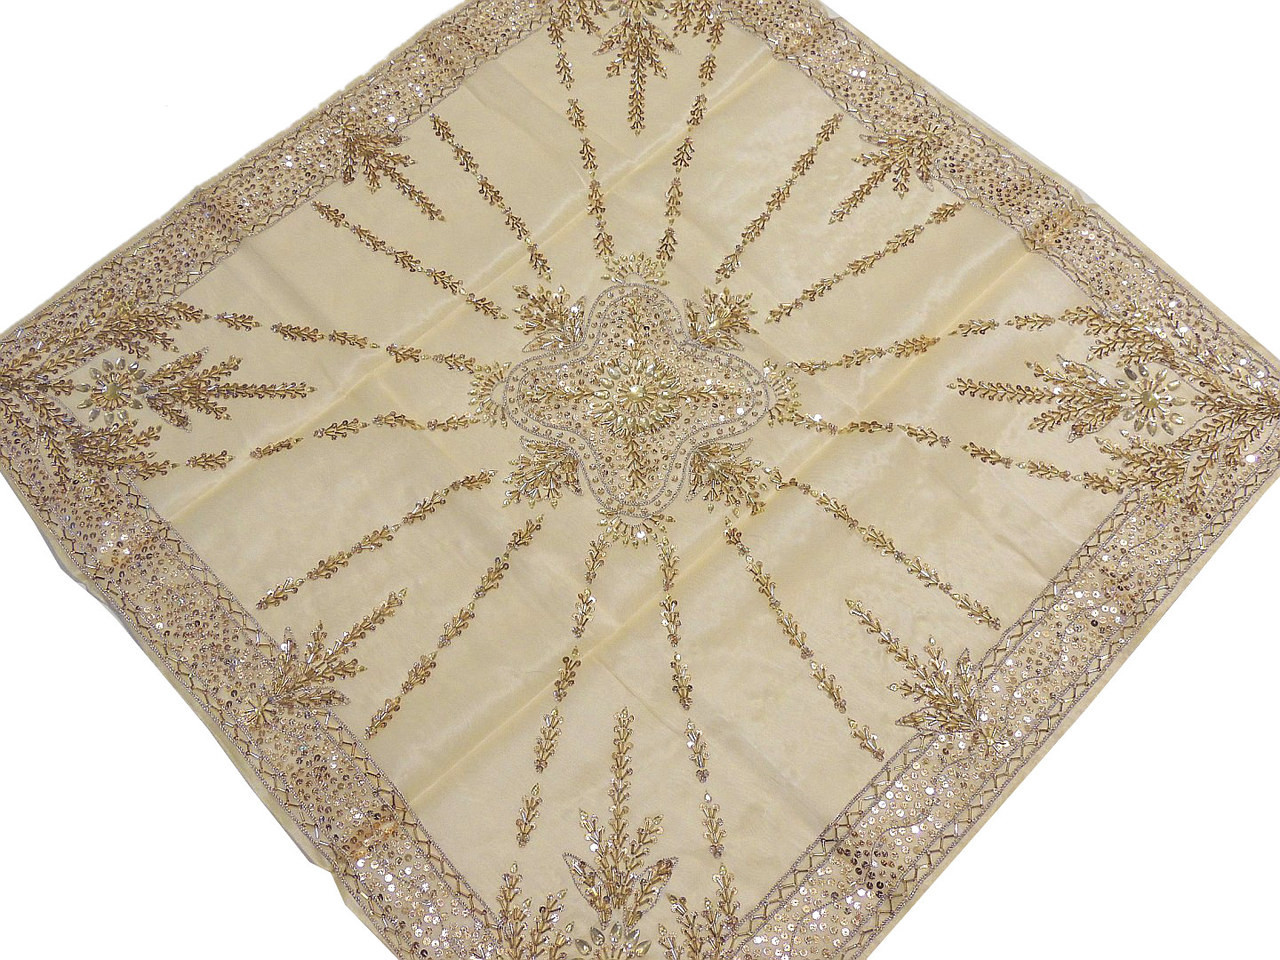 Handmade Tablecloths   Beaded Gold Table Decor Linens From India.